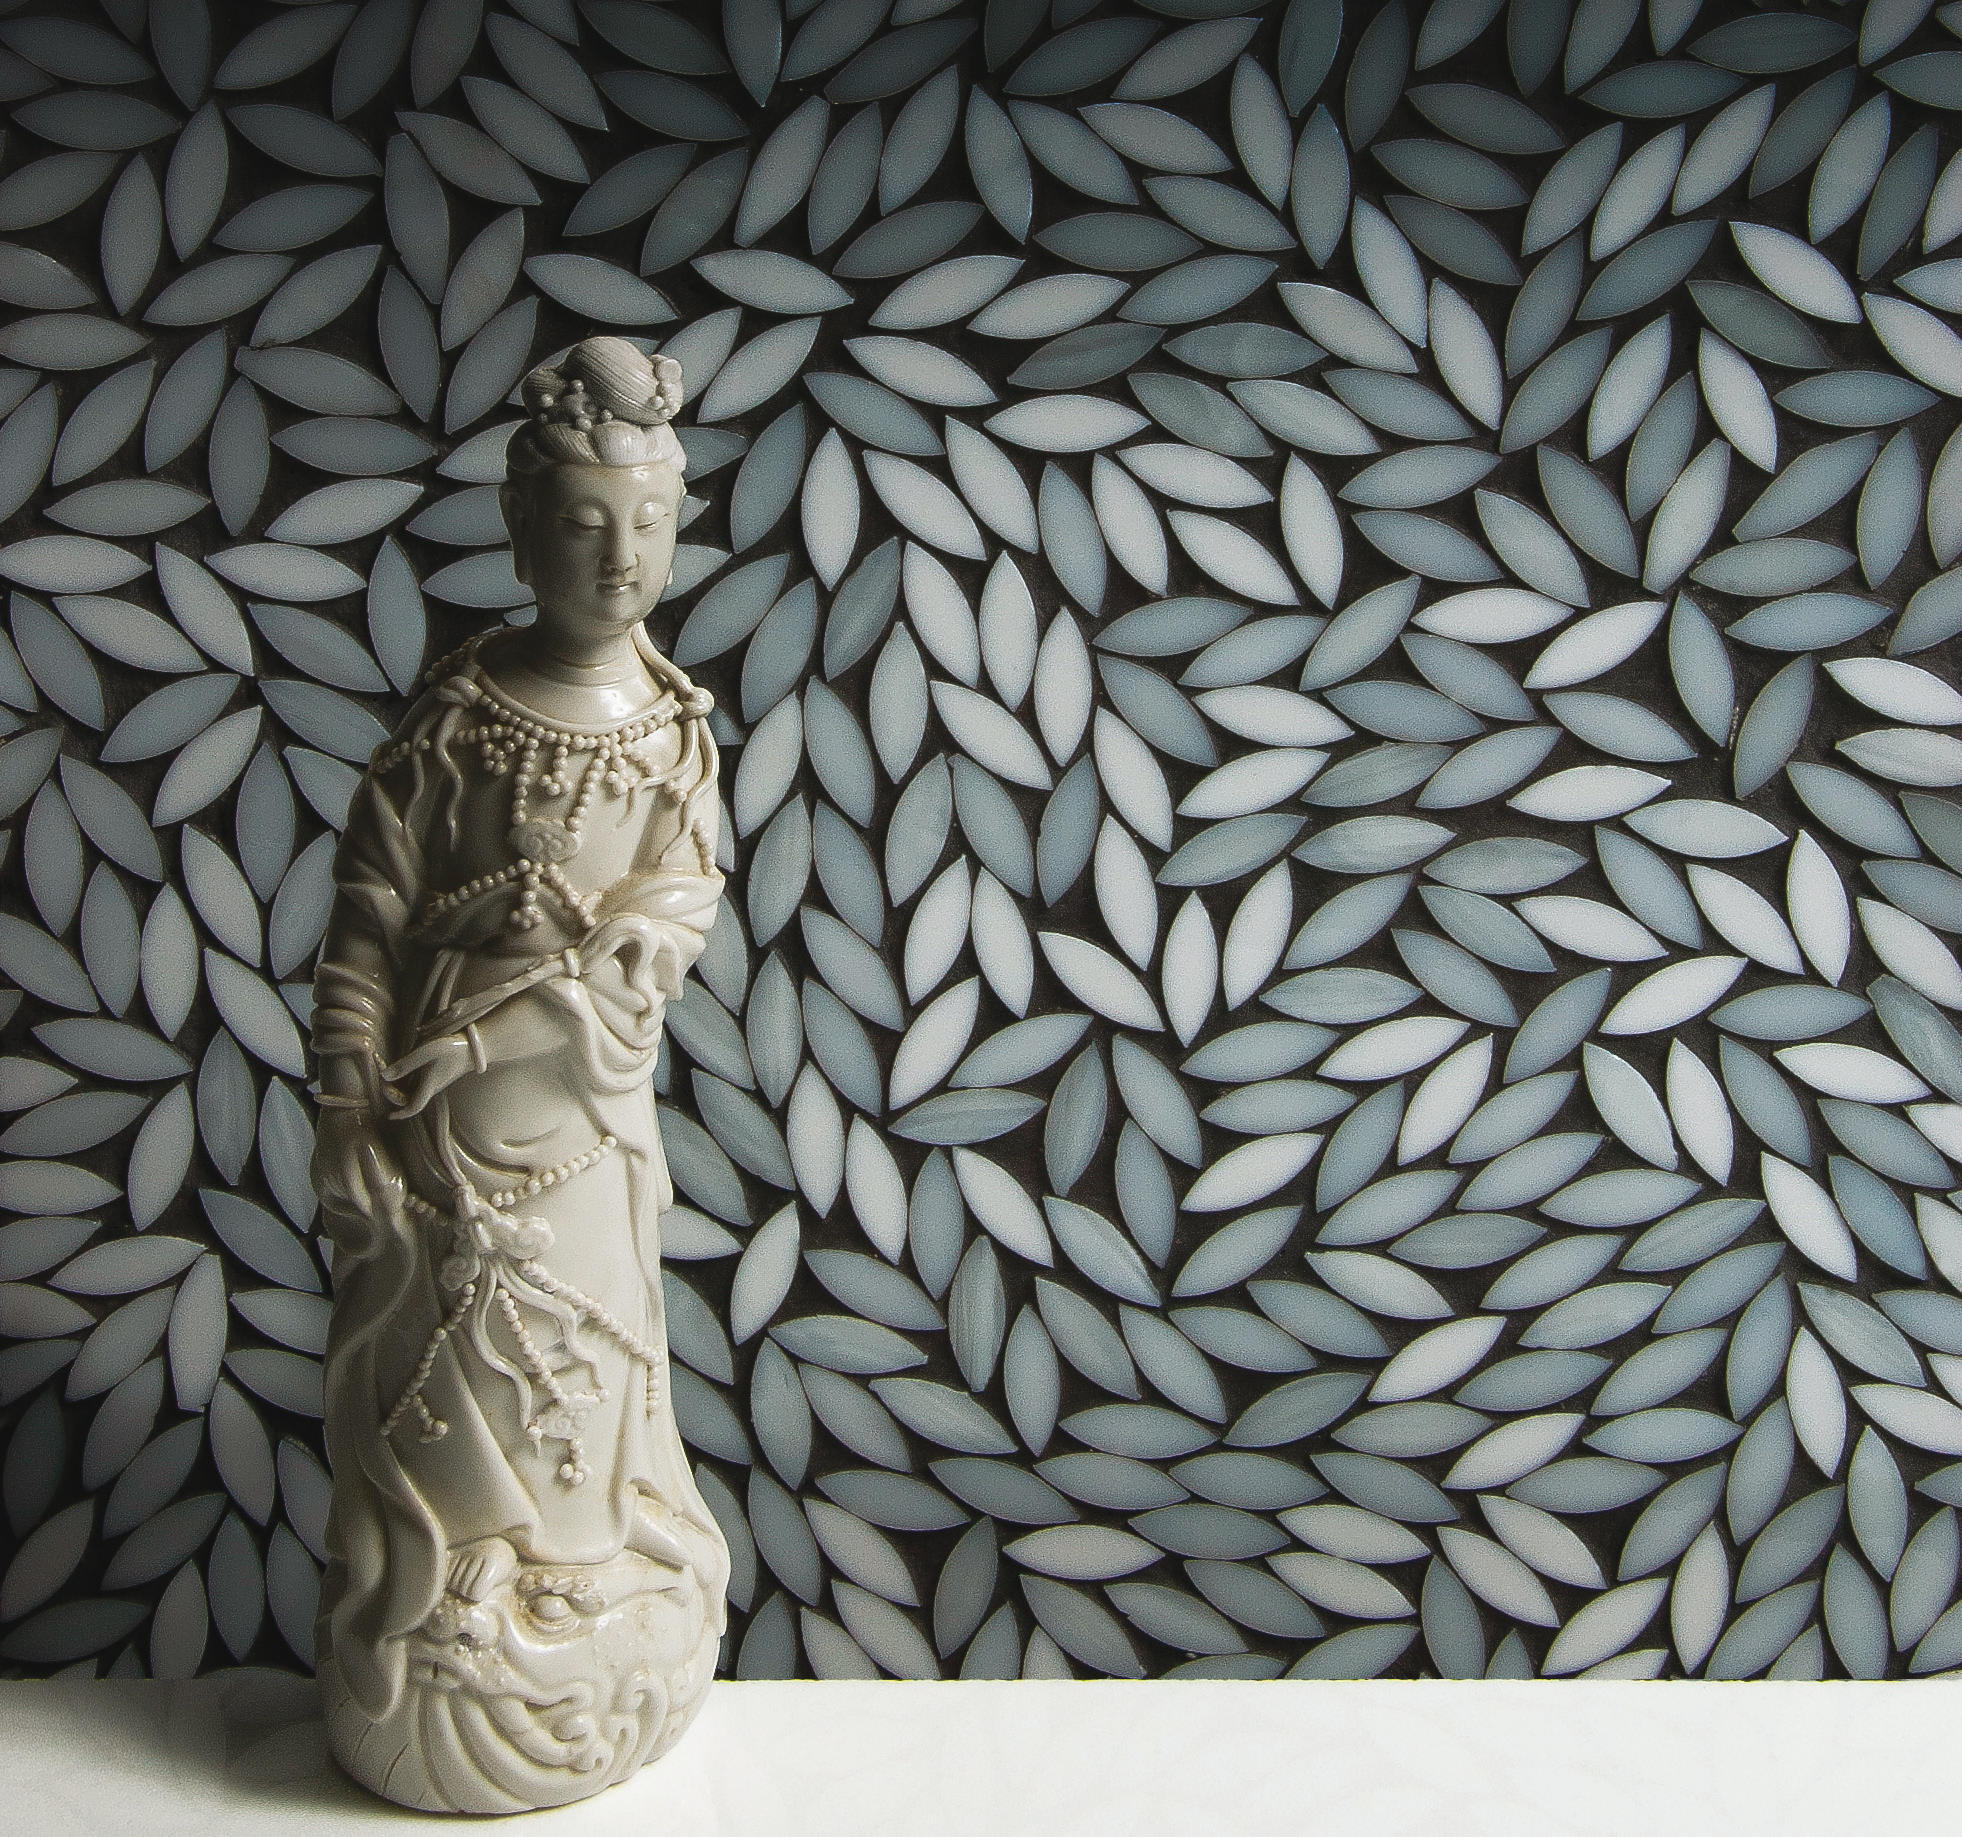 Foliage be bop white glass mosaic wall mosaics from artistic tile foliage be bop white glass mosaic by artistic tile dailygadgetfo Images